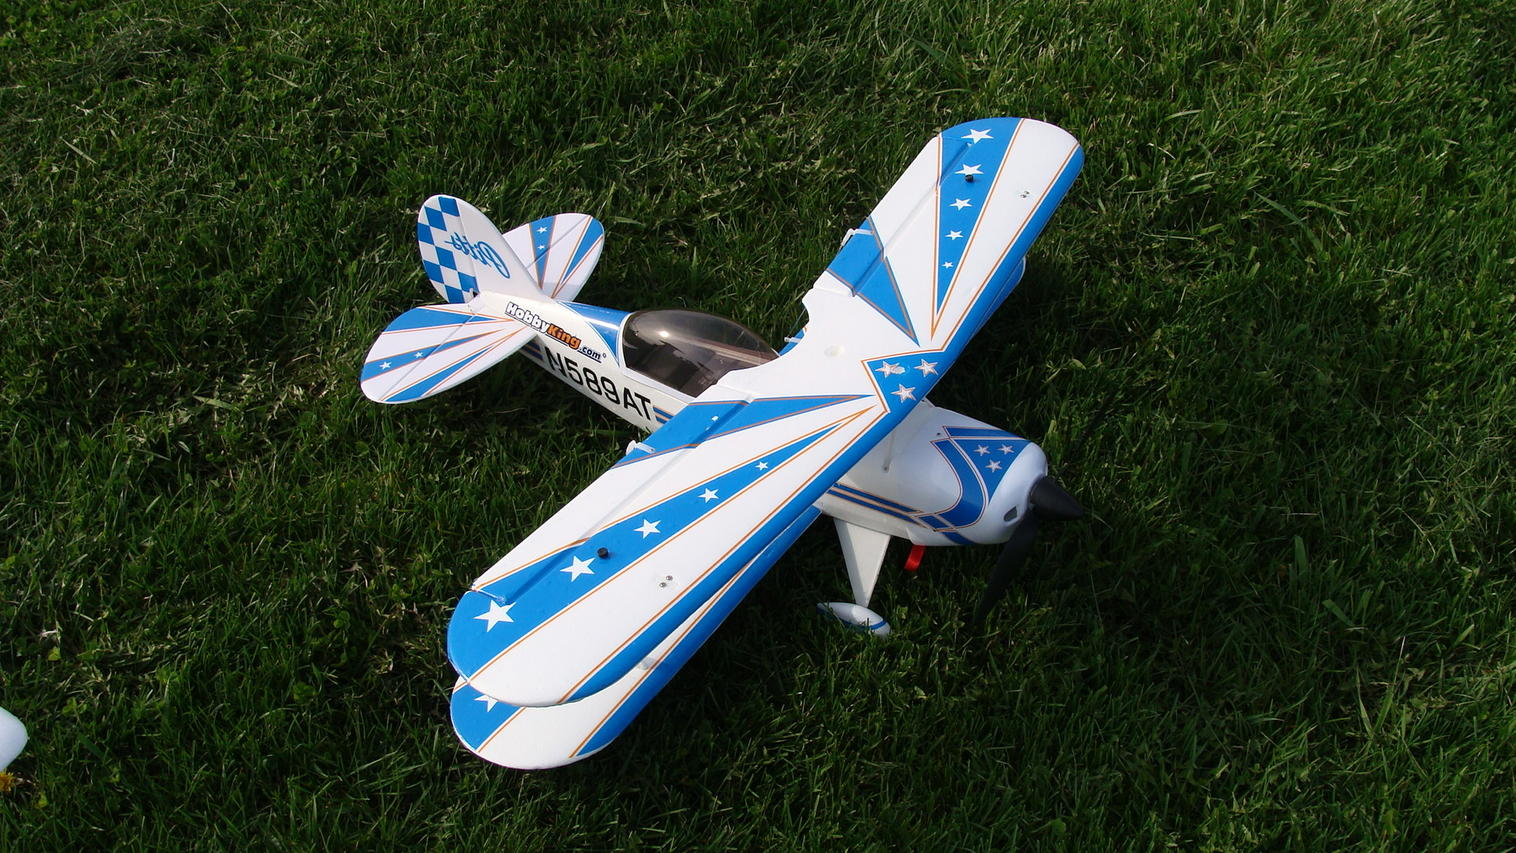 "33"" WS Pitts foamy"